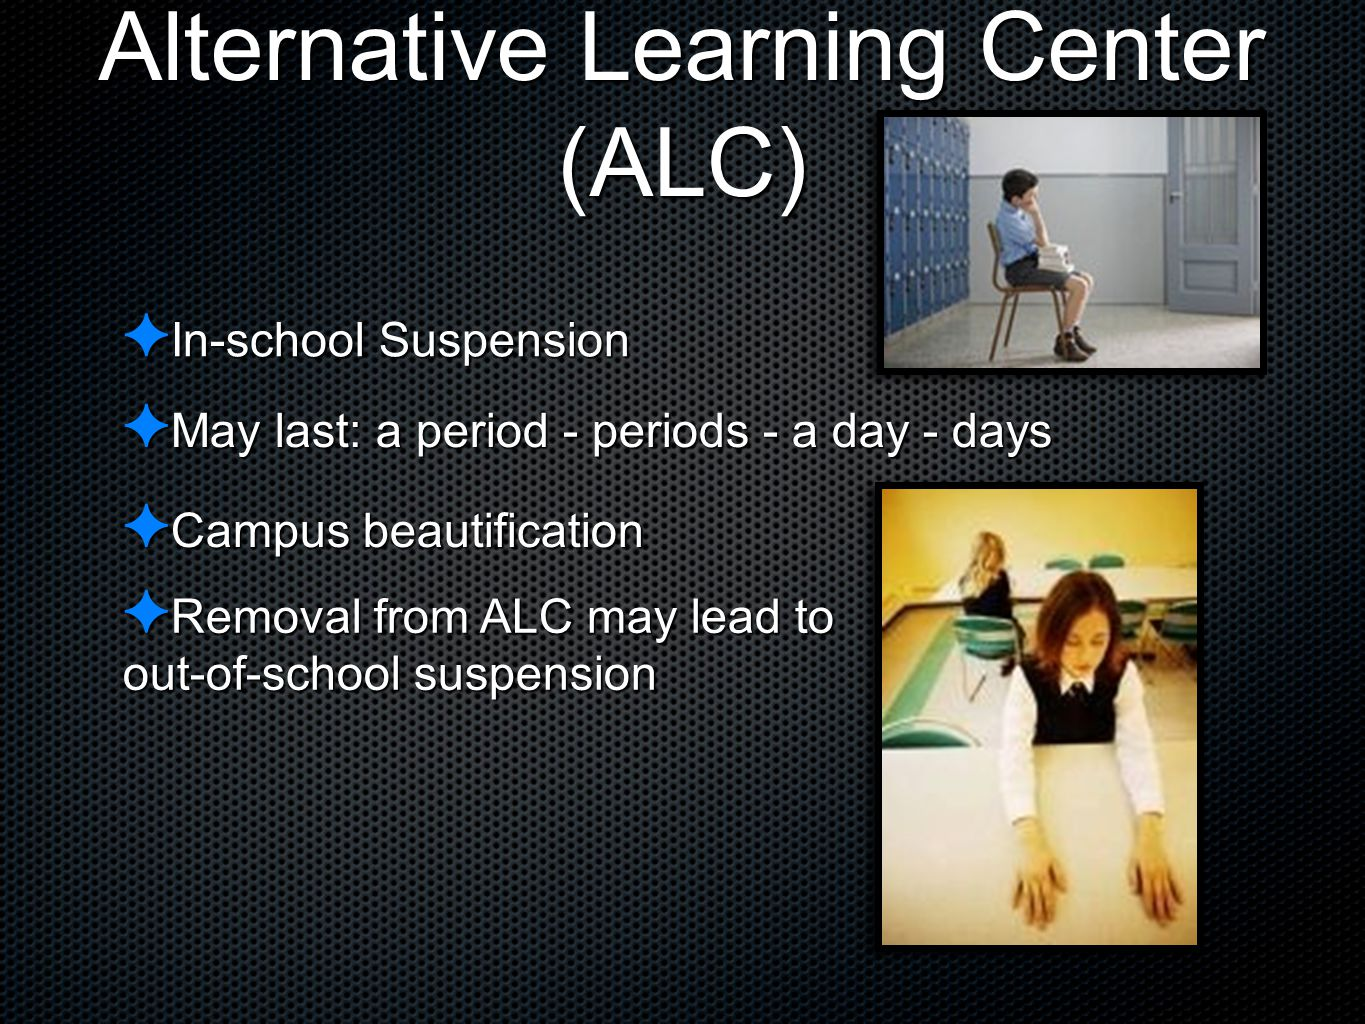 Alternative Learning Center (ALC) ✦ In-school Suspension ✦ May last: a period - periods - a day - days ✦ Campus beautification ✦ Removal from ALC may